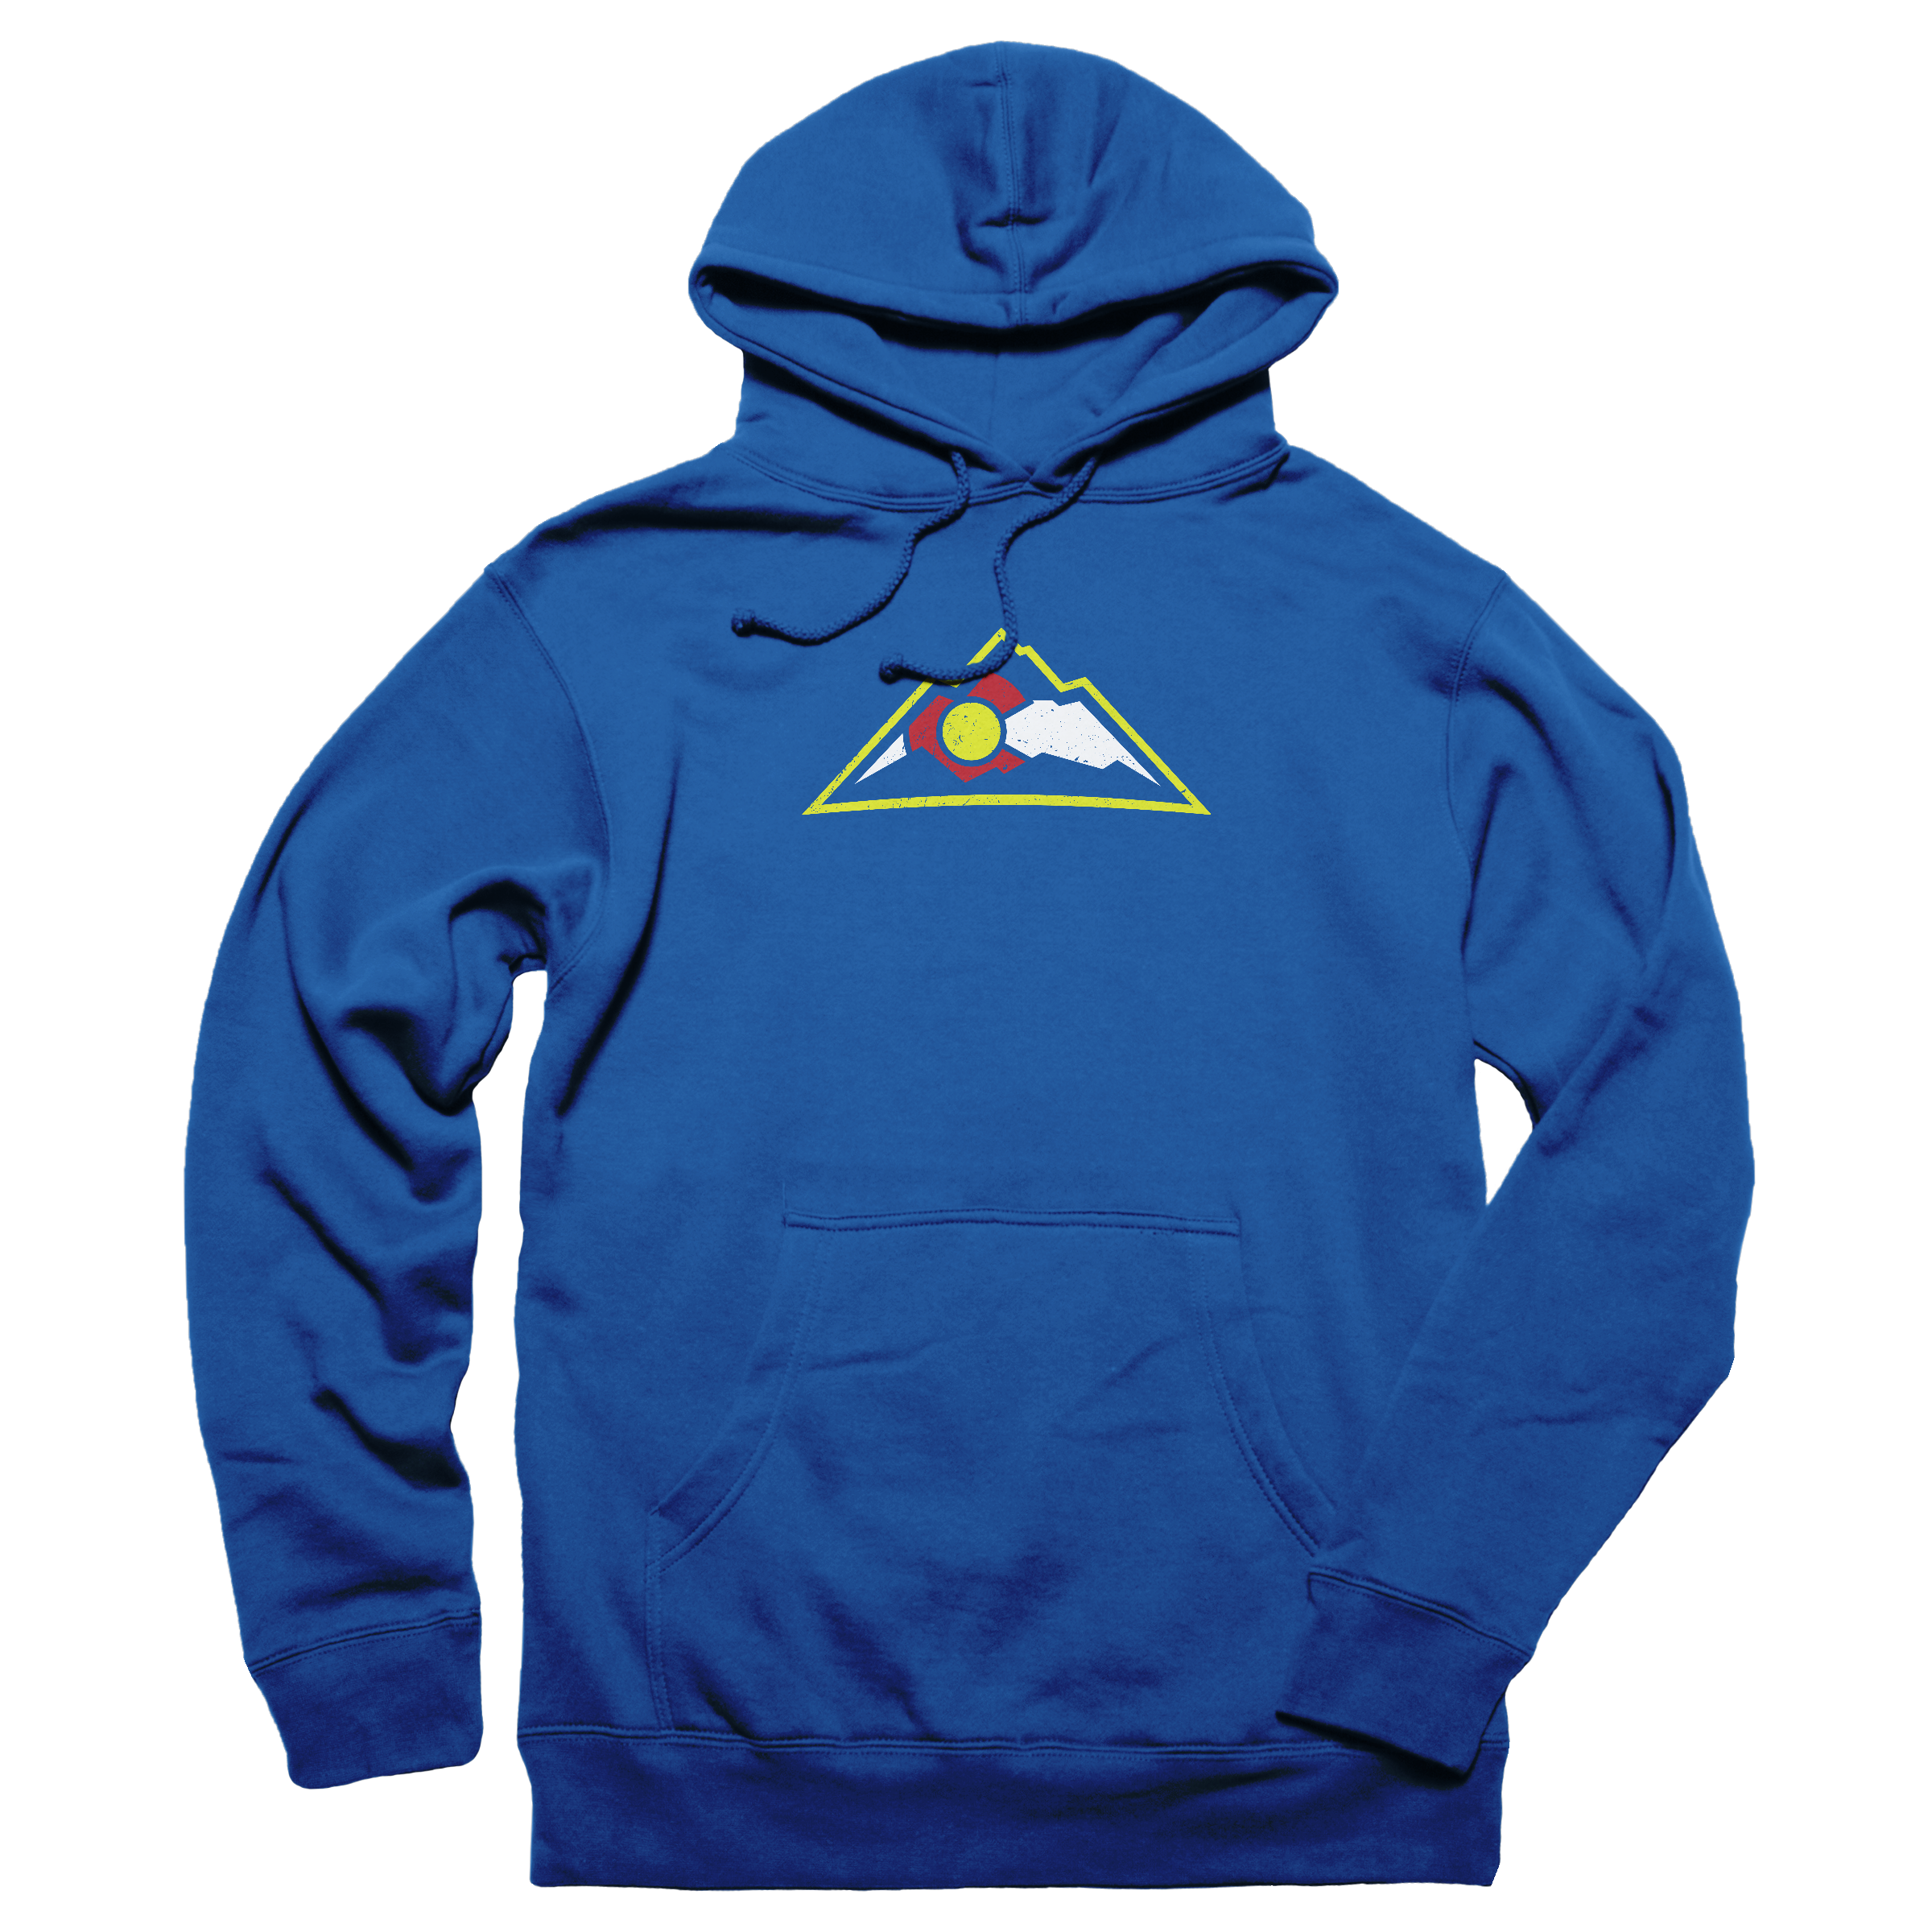 The Centennial State Pullover Hoodie